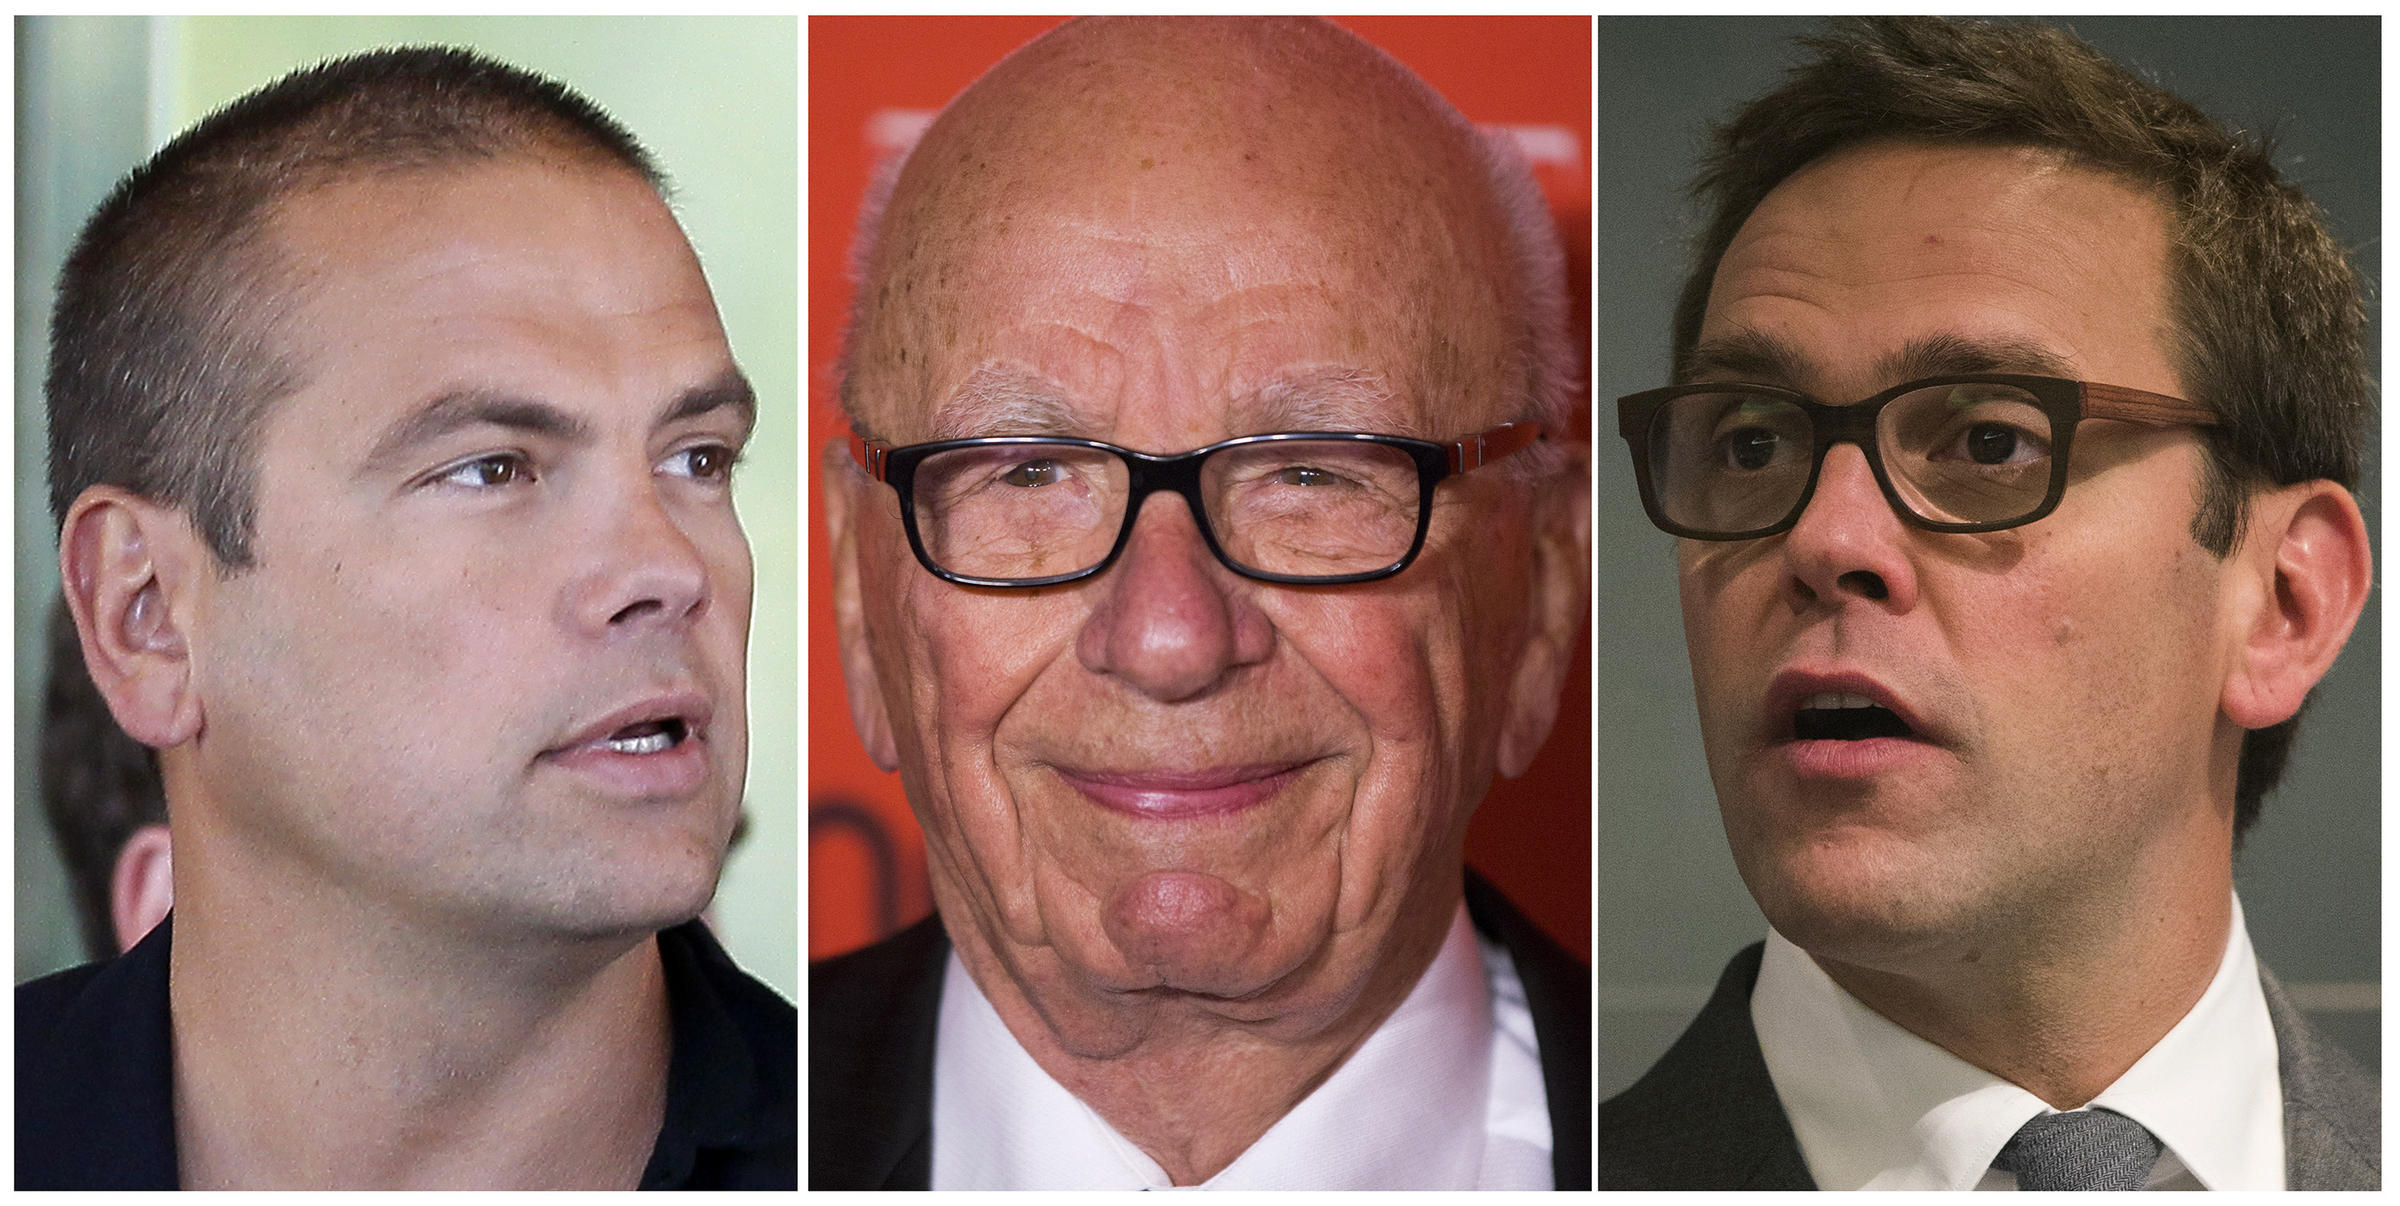 rupert murdoch leadership style Rupert murdoch is not fit to run a major  stock so rupert is unlikely to come under any real pressure to change his leadership style.